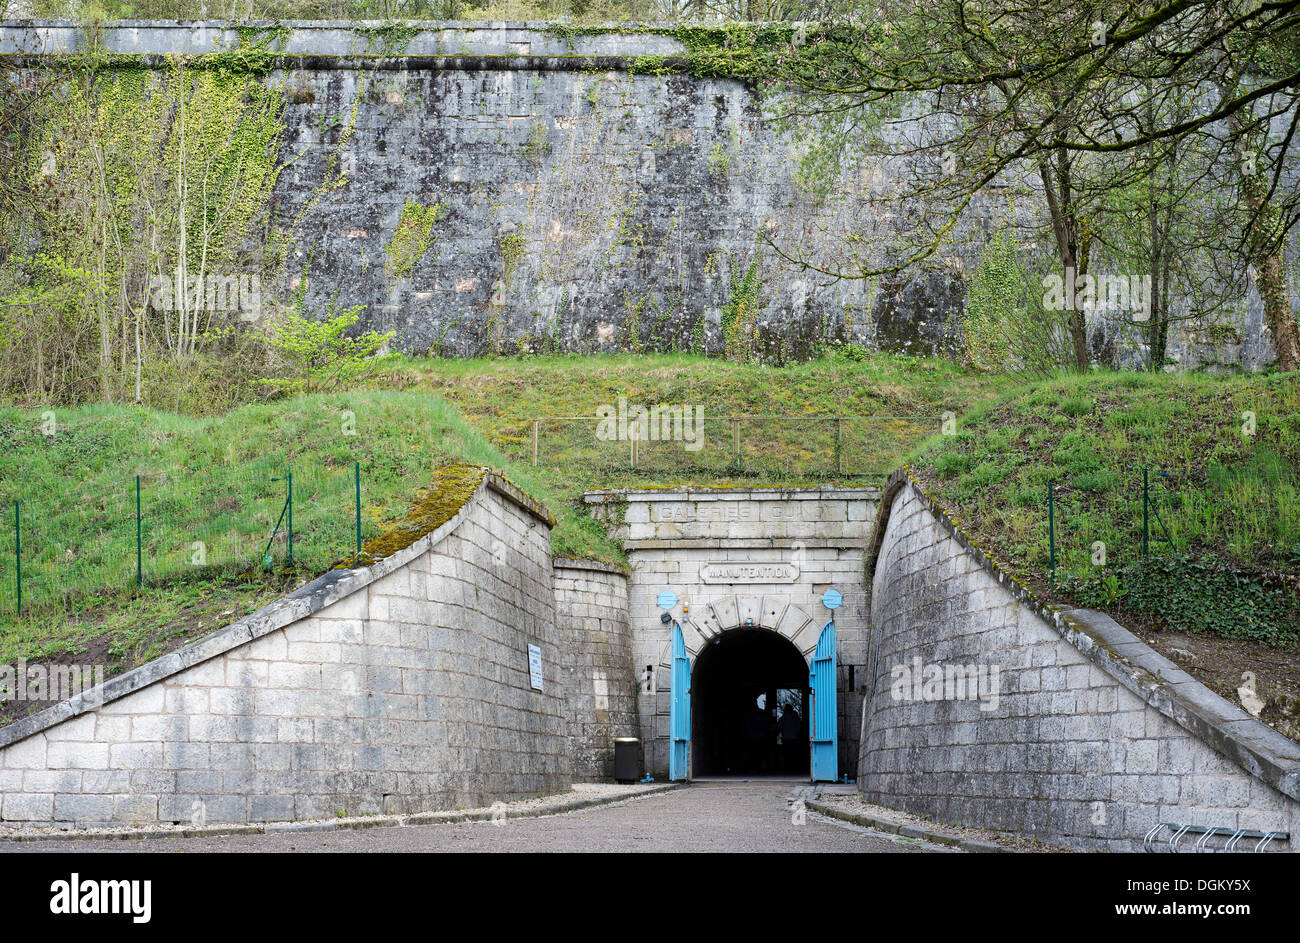 Entrance to the museum experience at the fortress of Verdun, Verdun, France, Europe - Stock Image